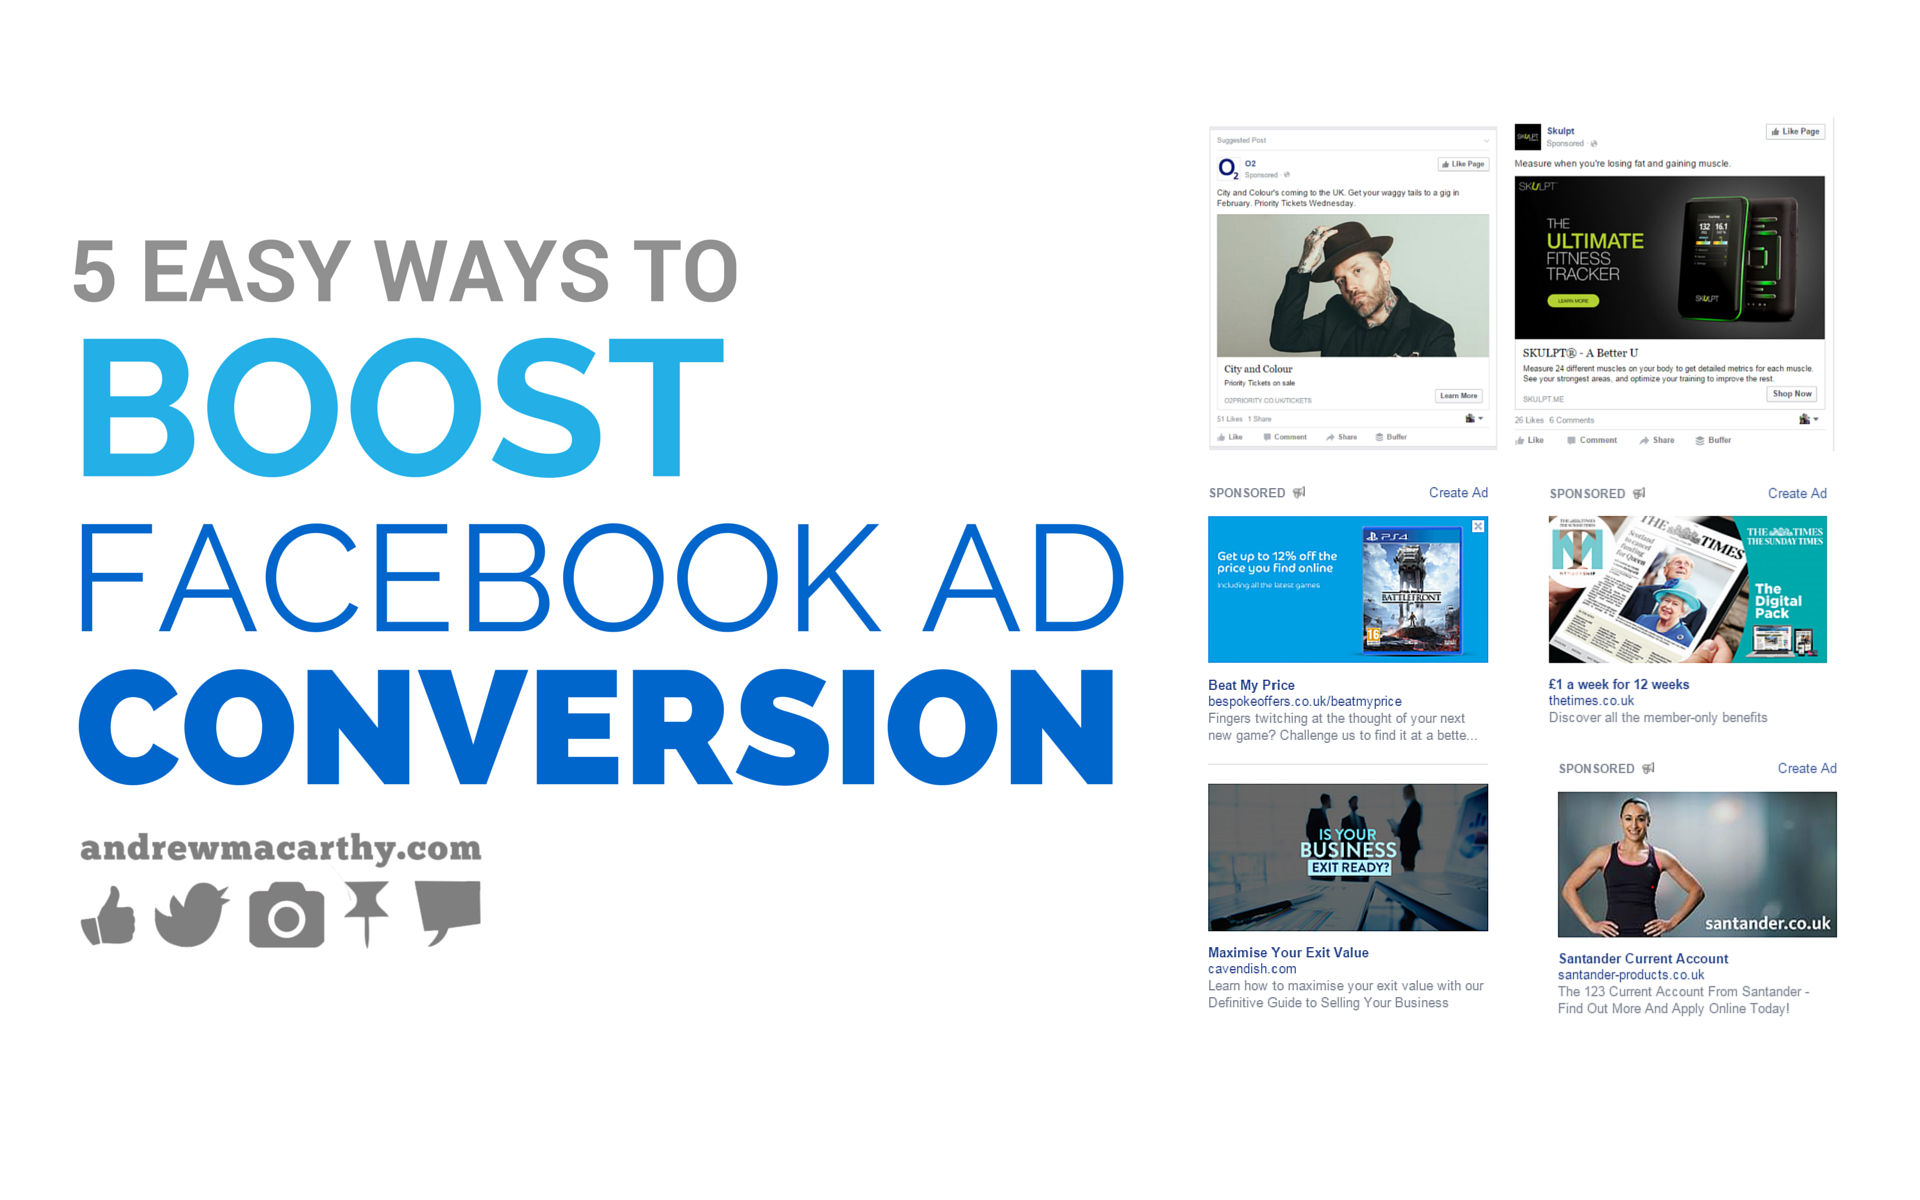 5 One-Minute Strategies to Boost Your Facebook Ad Conversions And Increase Sales